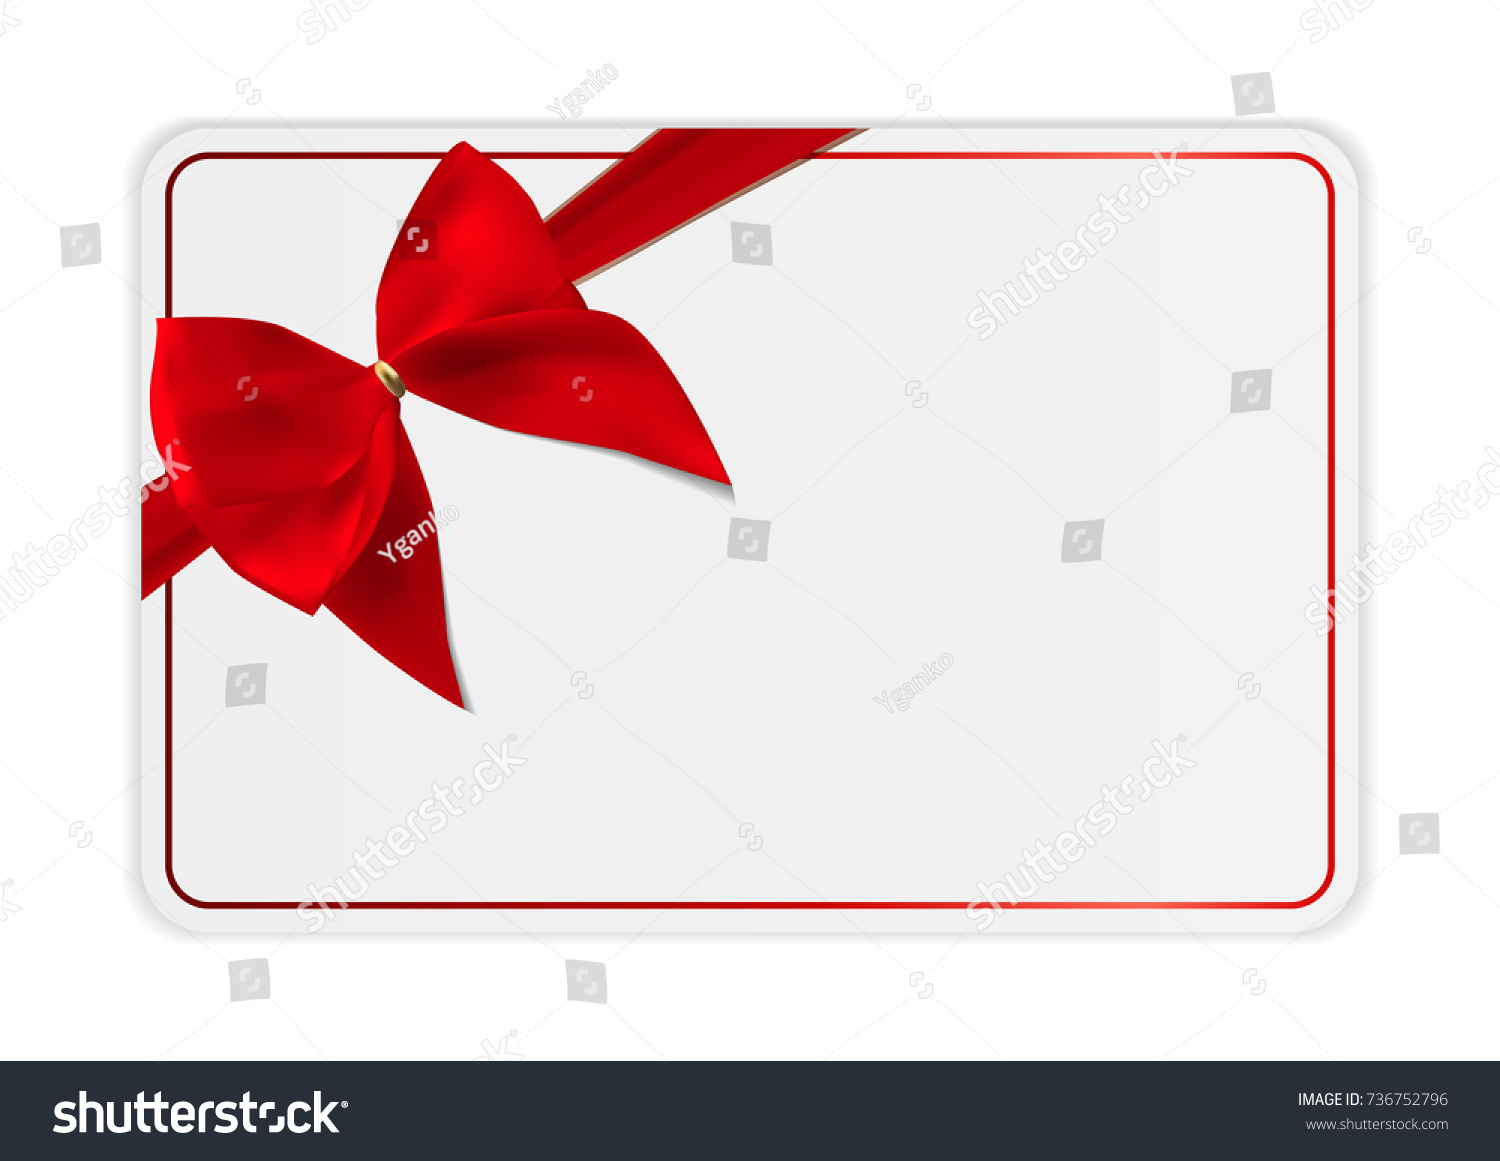 Blank Gift Card Template Bow Ribbon Stock Illustration - Blank gift card template